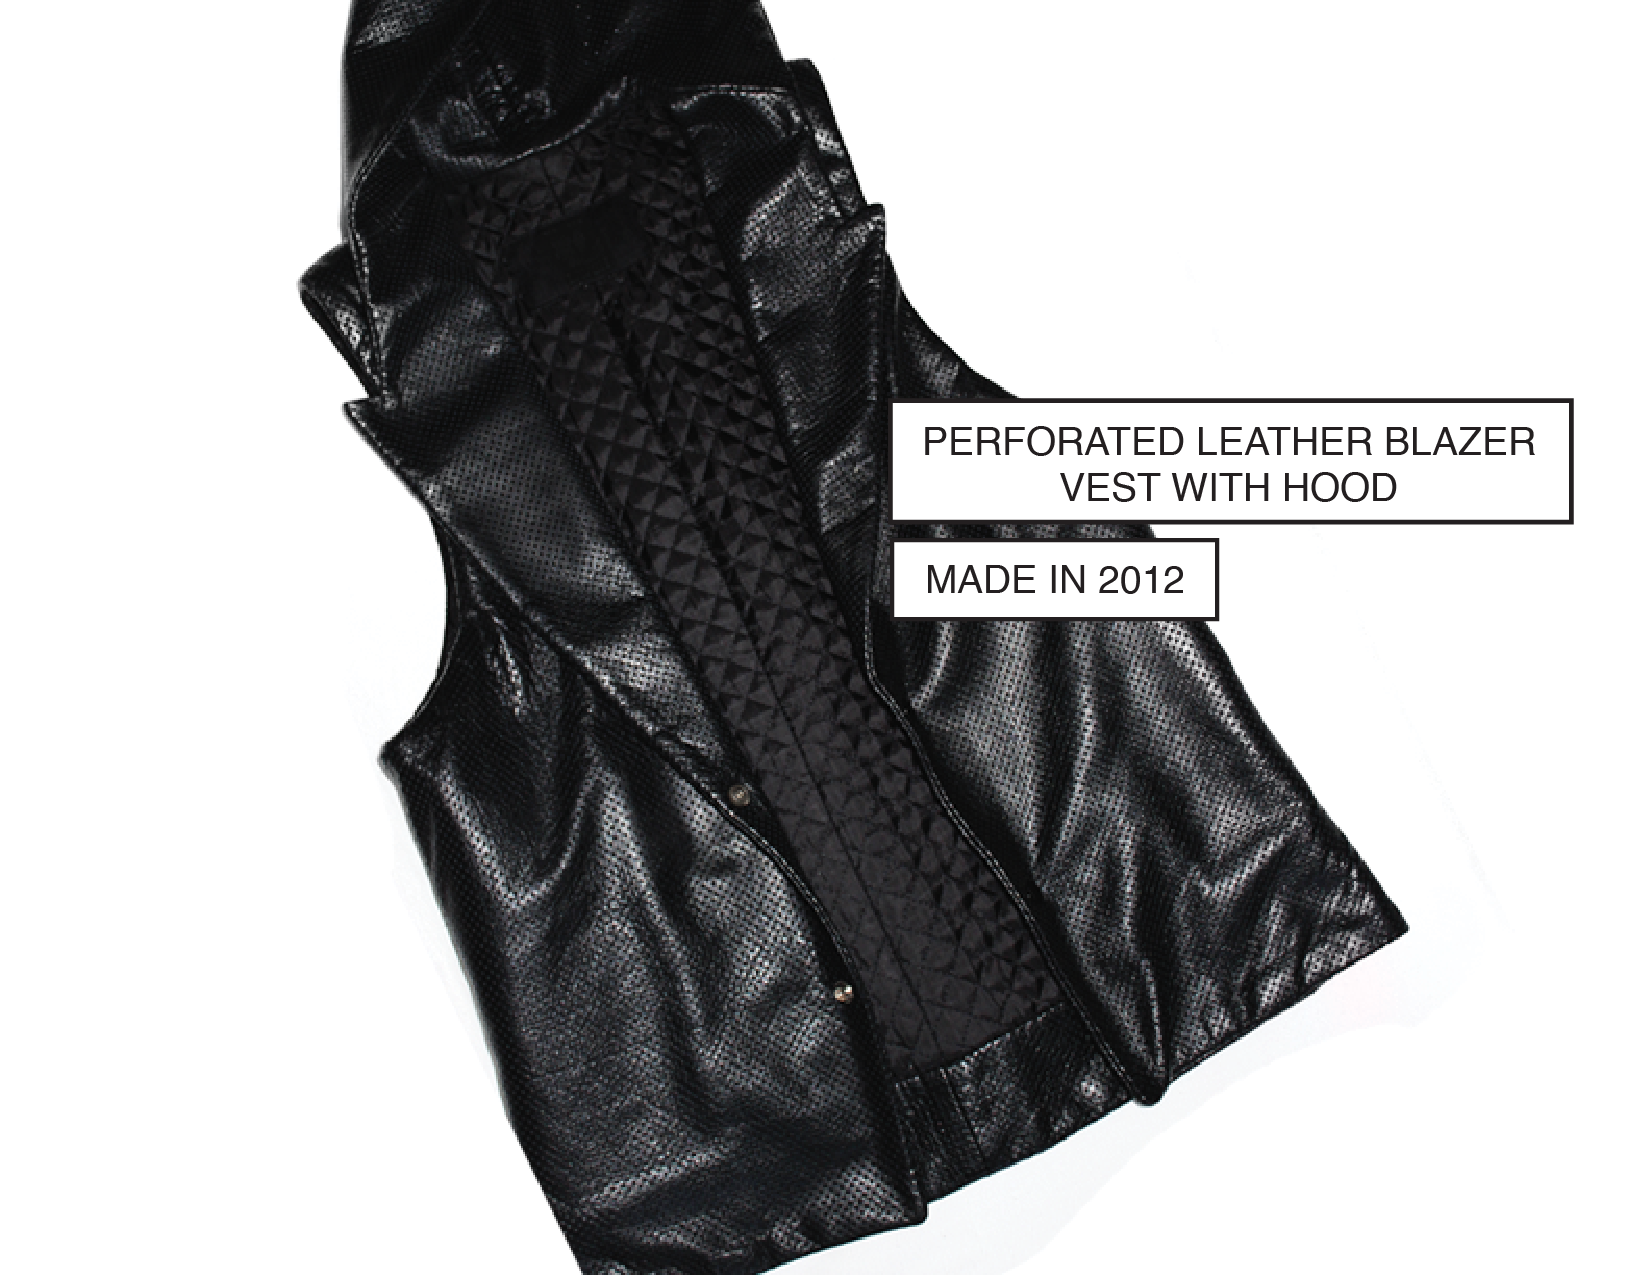 body_of_work_alfred_lape_cut_and_sew.png-23